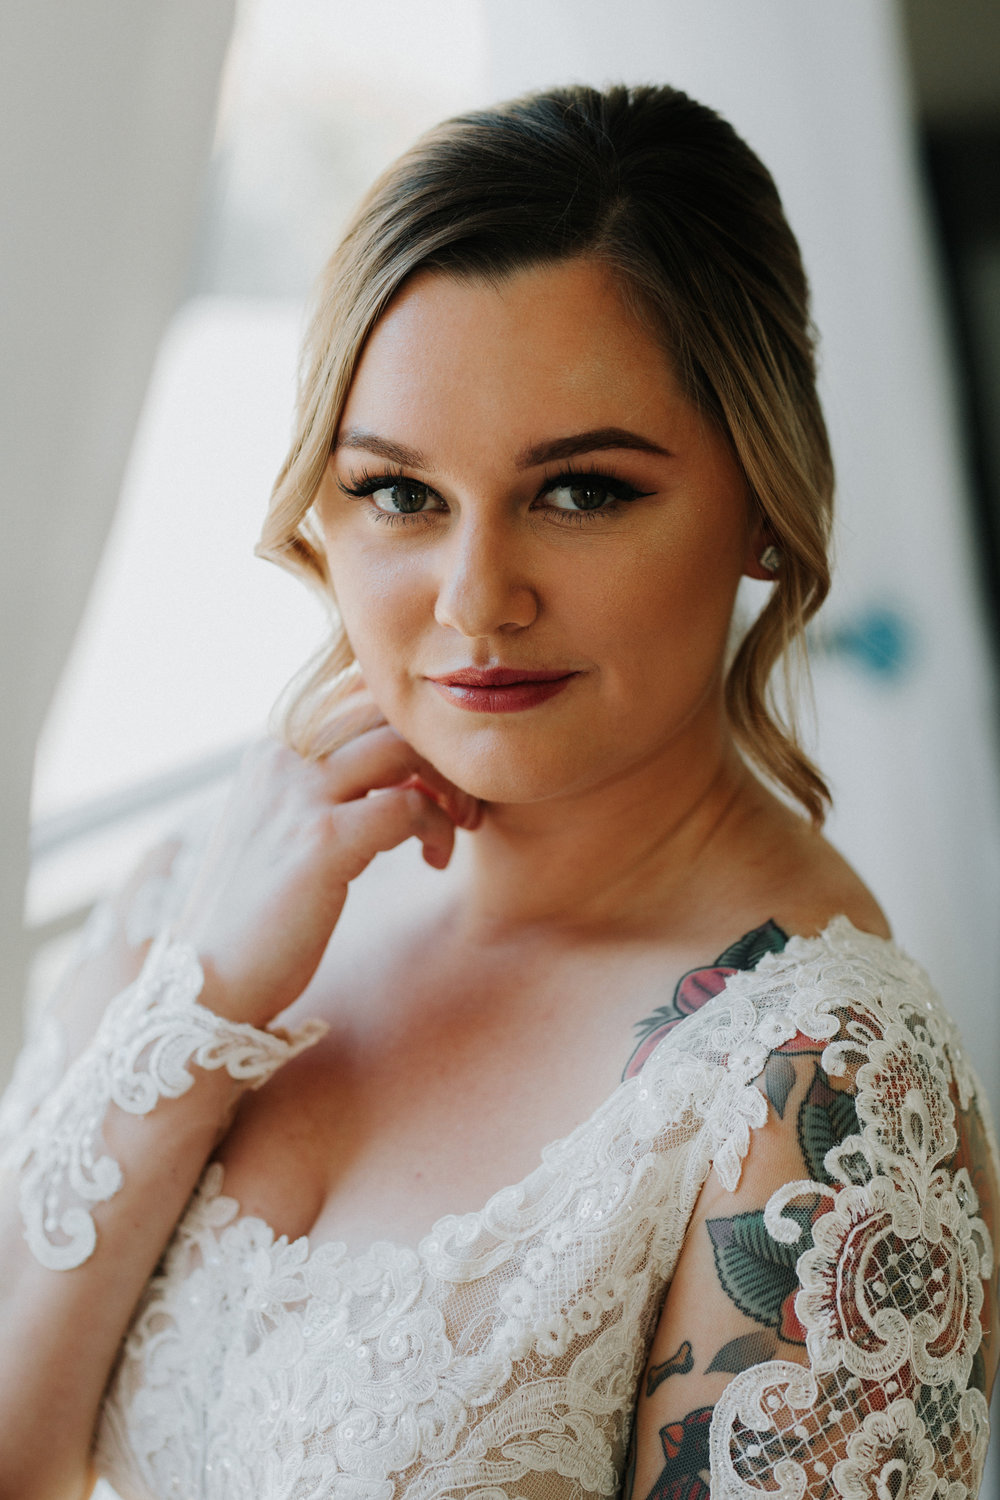 Gorgeous Wedding Makeup - Dara's Garden Knoxville East Tennessee Wedding — The Overwhelmed Bride Wedding Blog